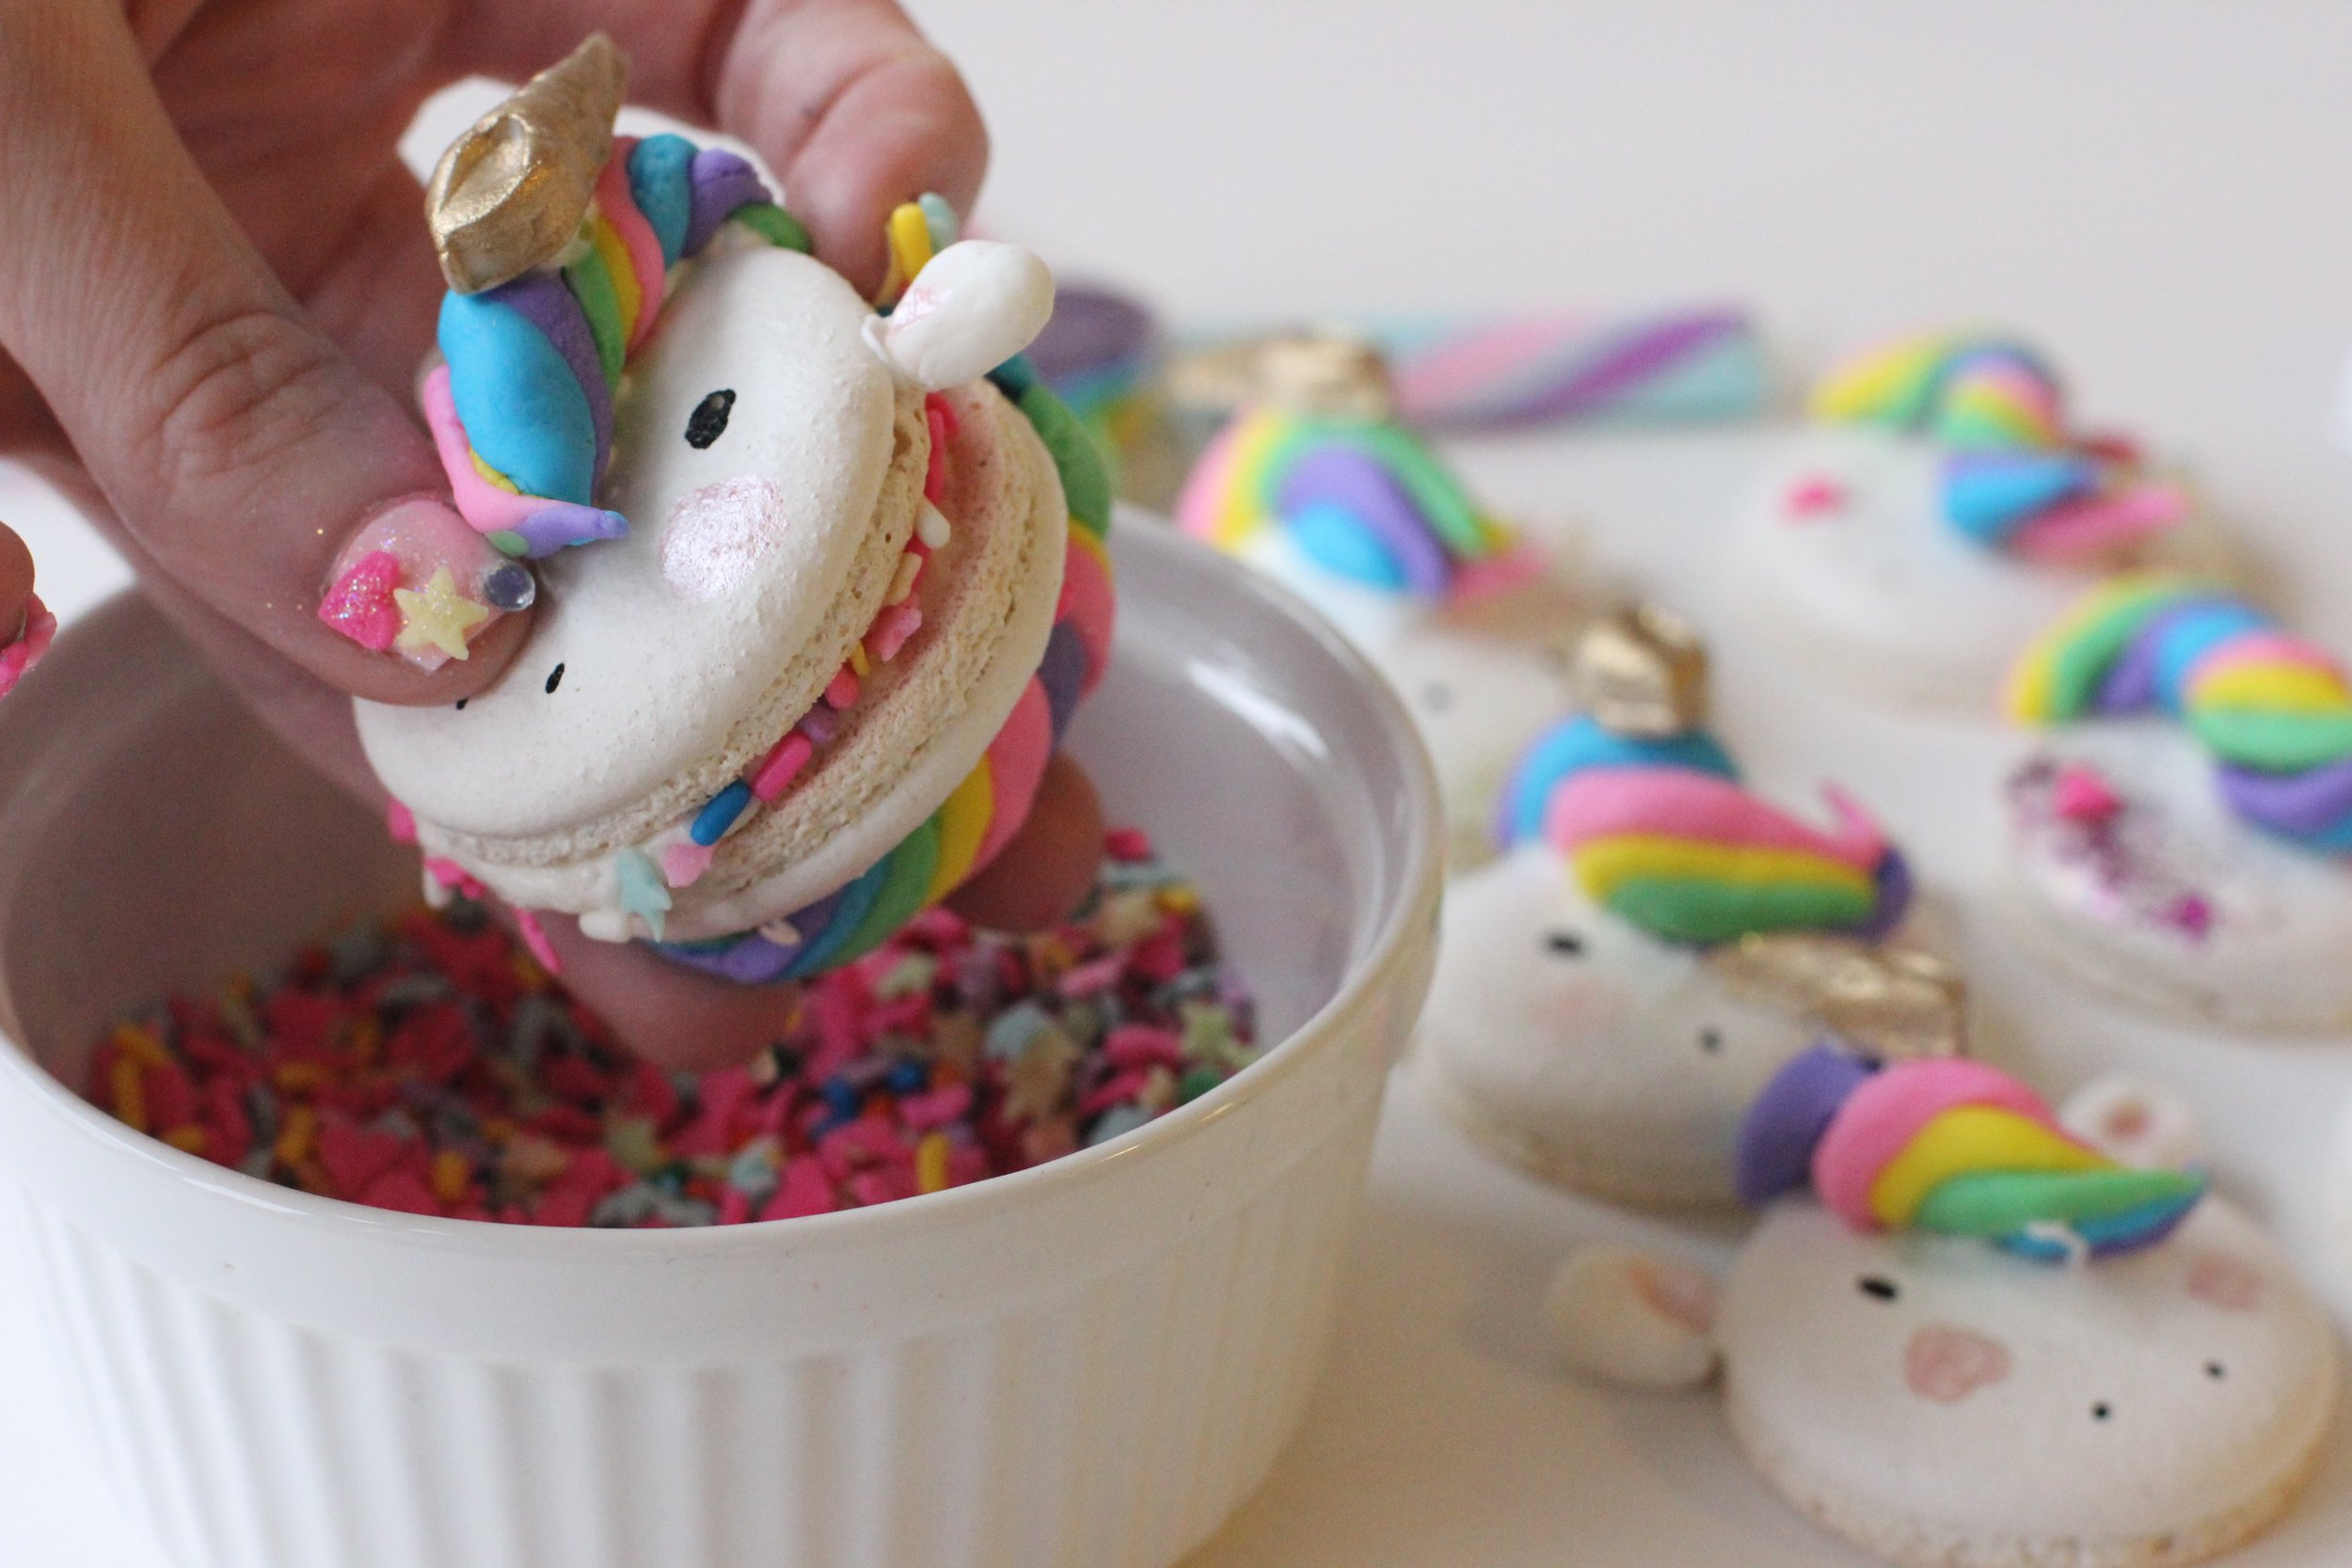 Food Network Facebook Video on how to create the Unicorn Macaron